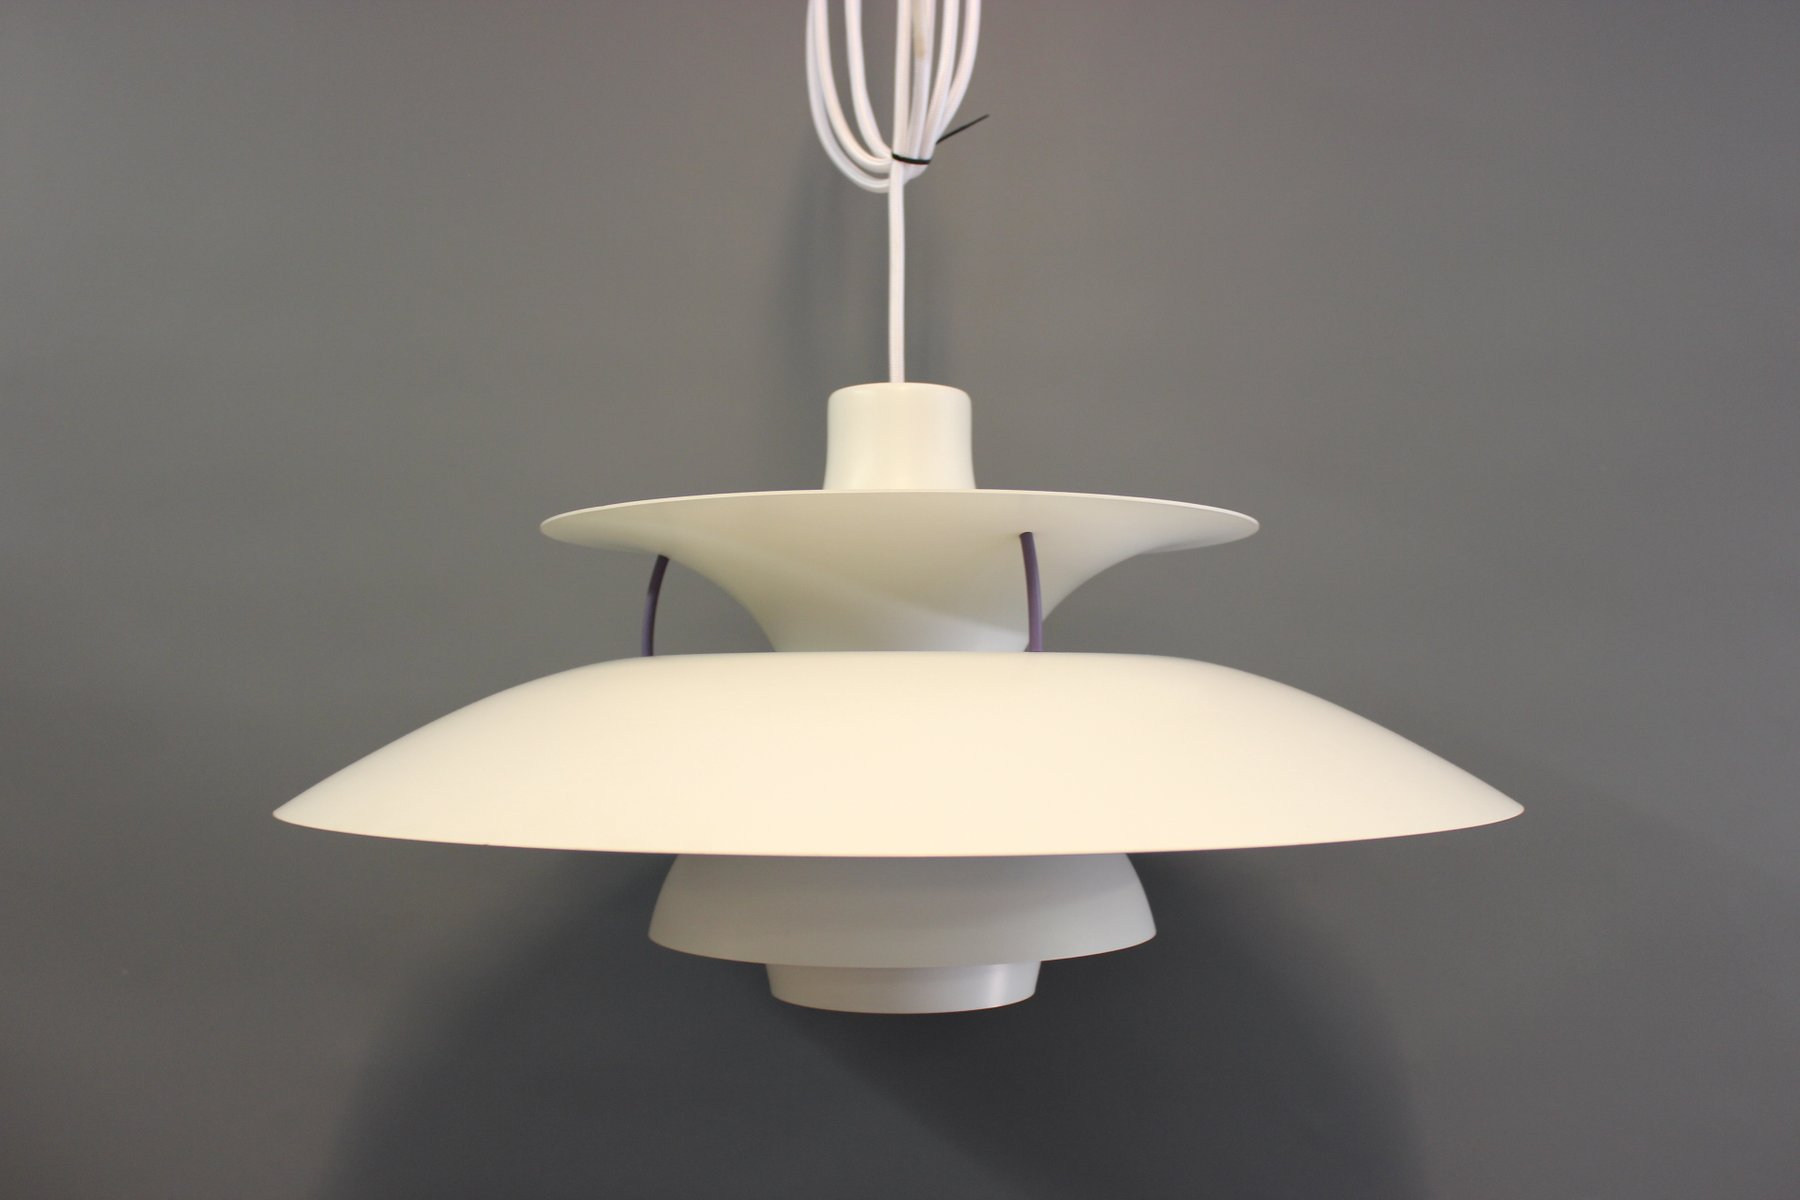 ph5 ceiling lamp by poul henningsen for louis poulsen for sale at pamono. Black Bedroom Furniture Sets. Home Design Ideas